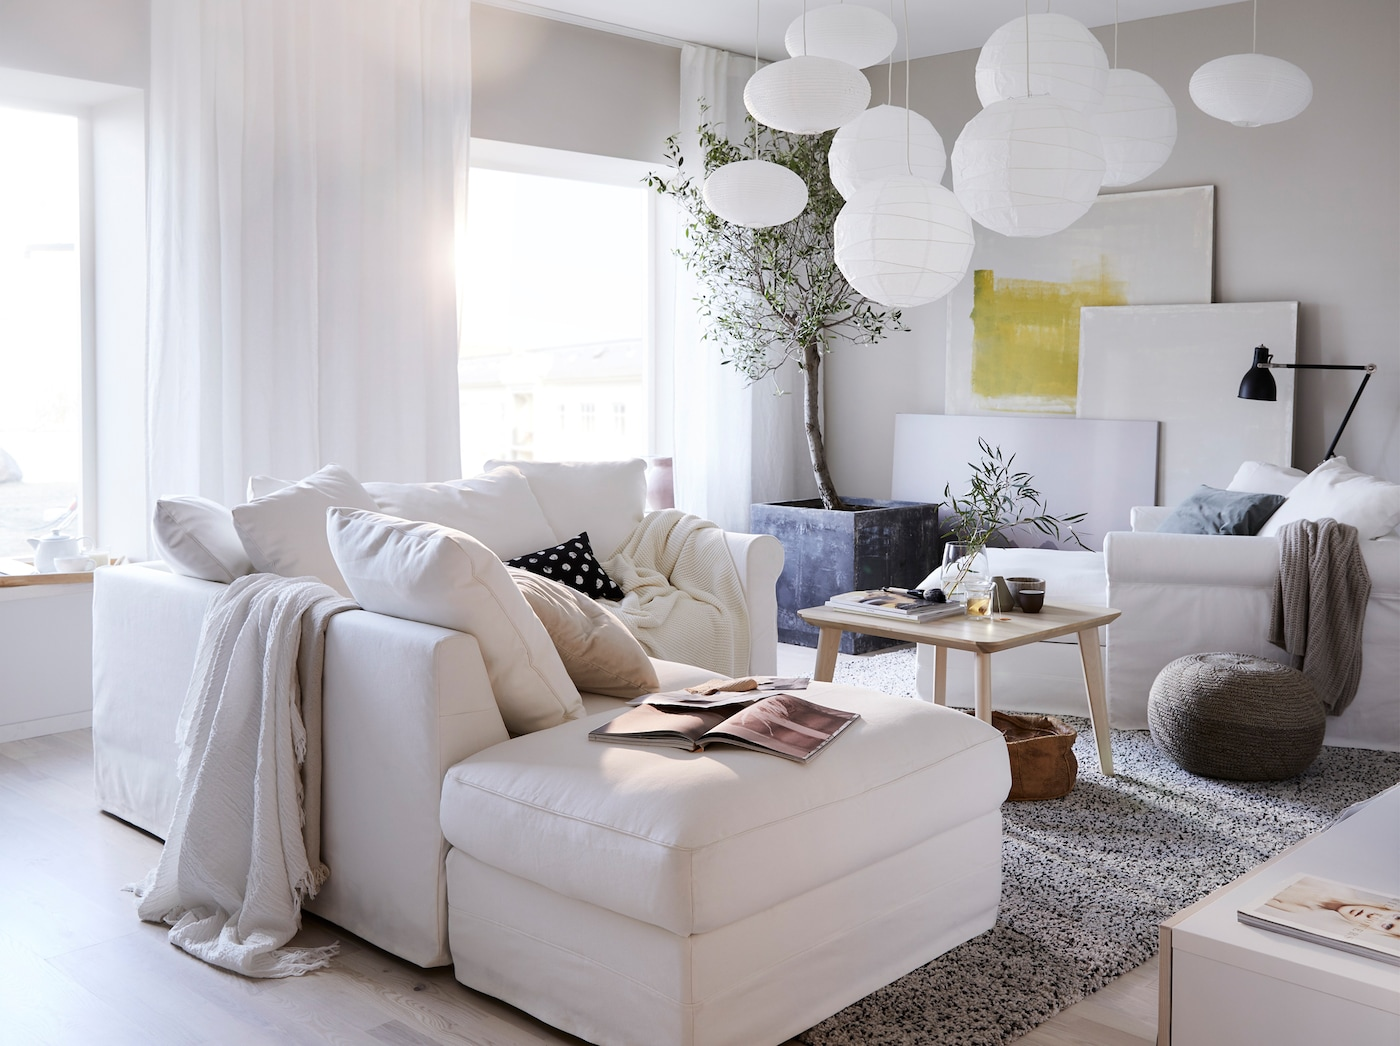 Step into living room turned haven made just for you with a white GRÖNLID sofa and chaise, as well as a smooth light wood LISABO coffee table.